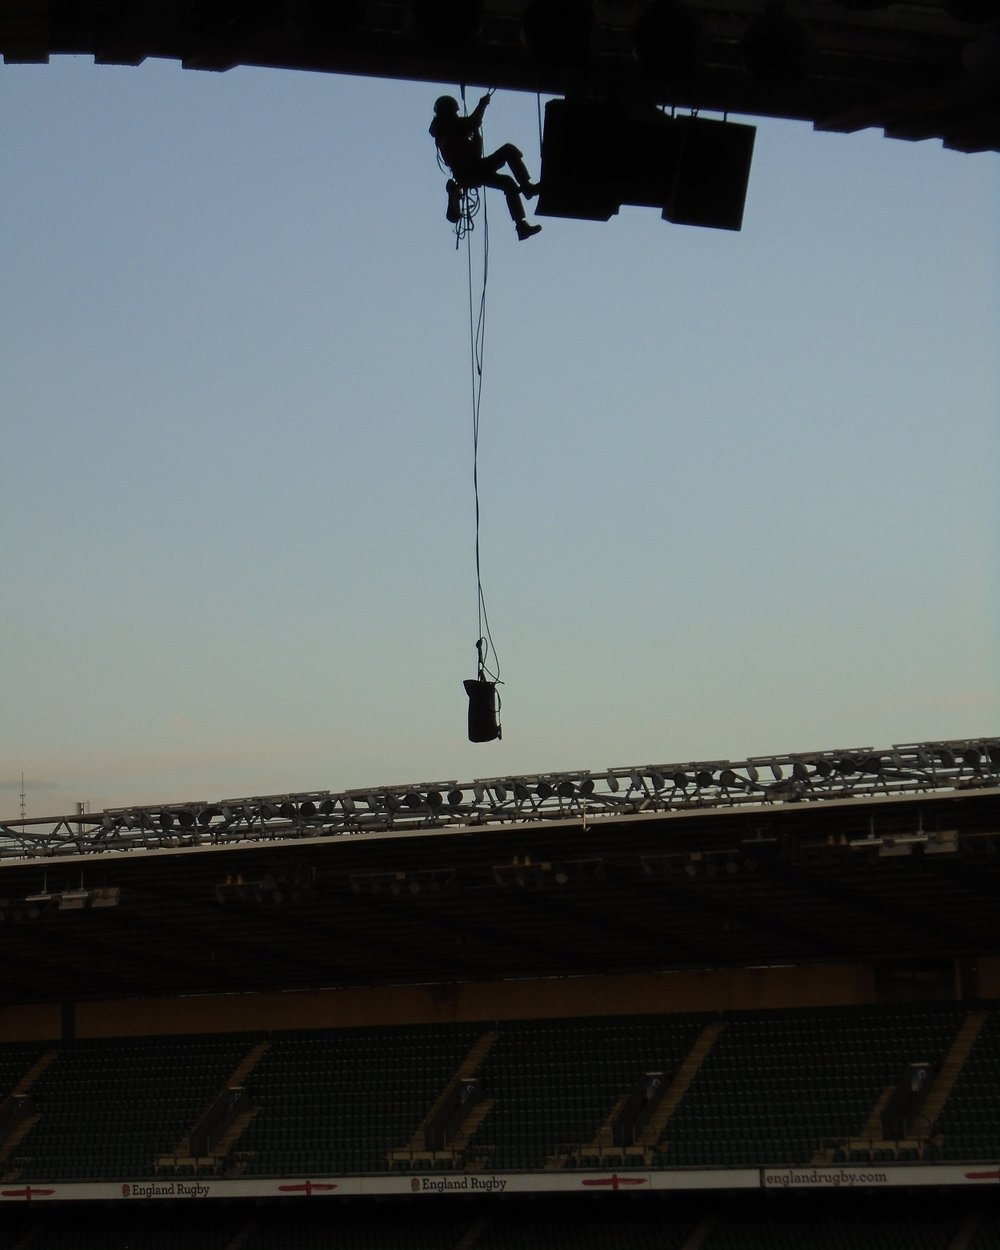 Rope Access Stadium Speaker Works